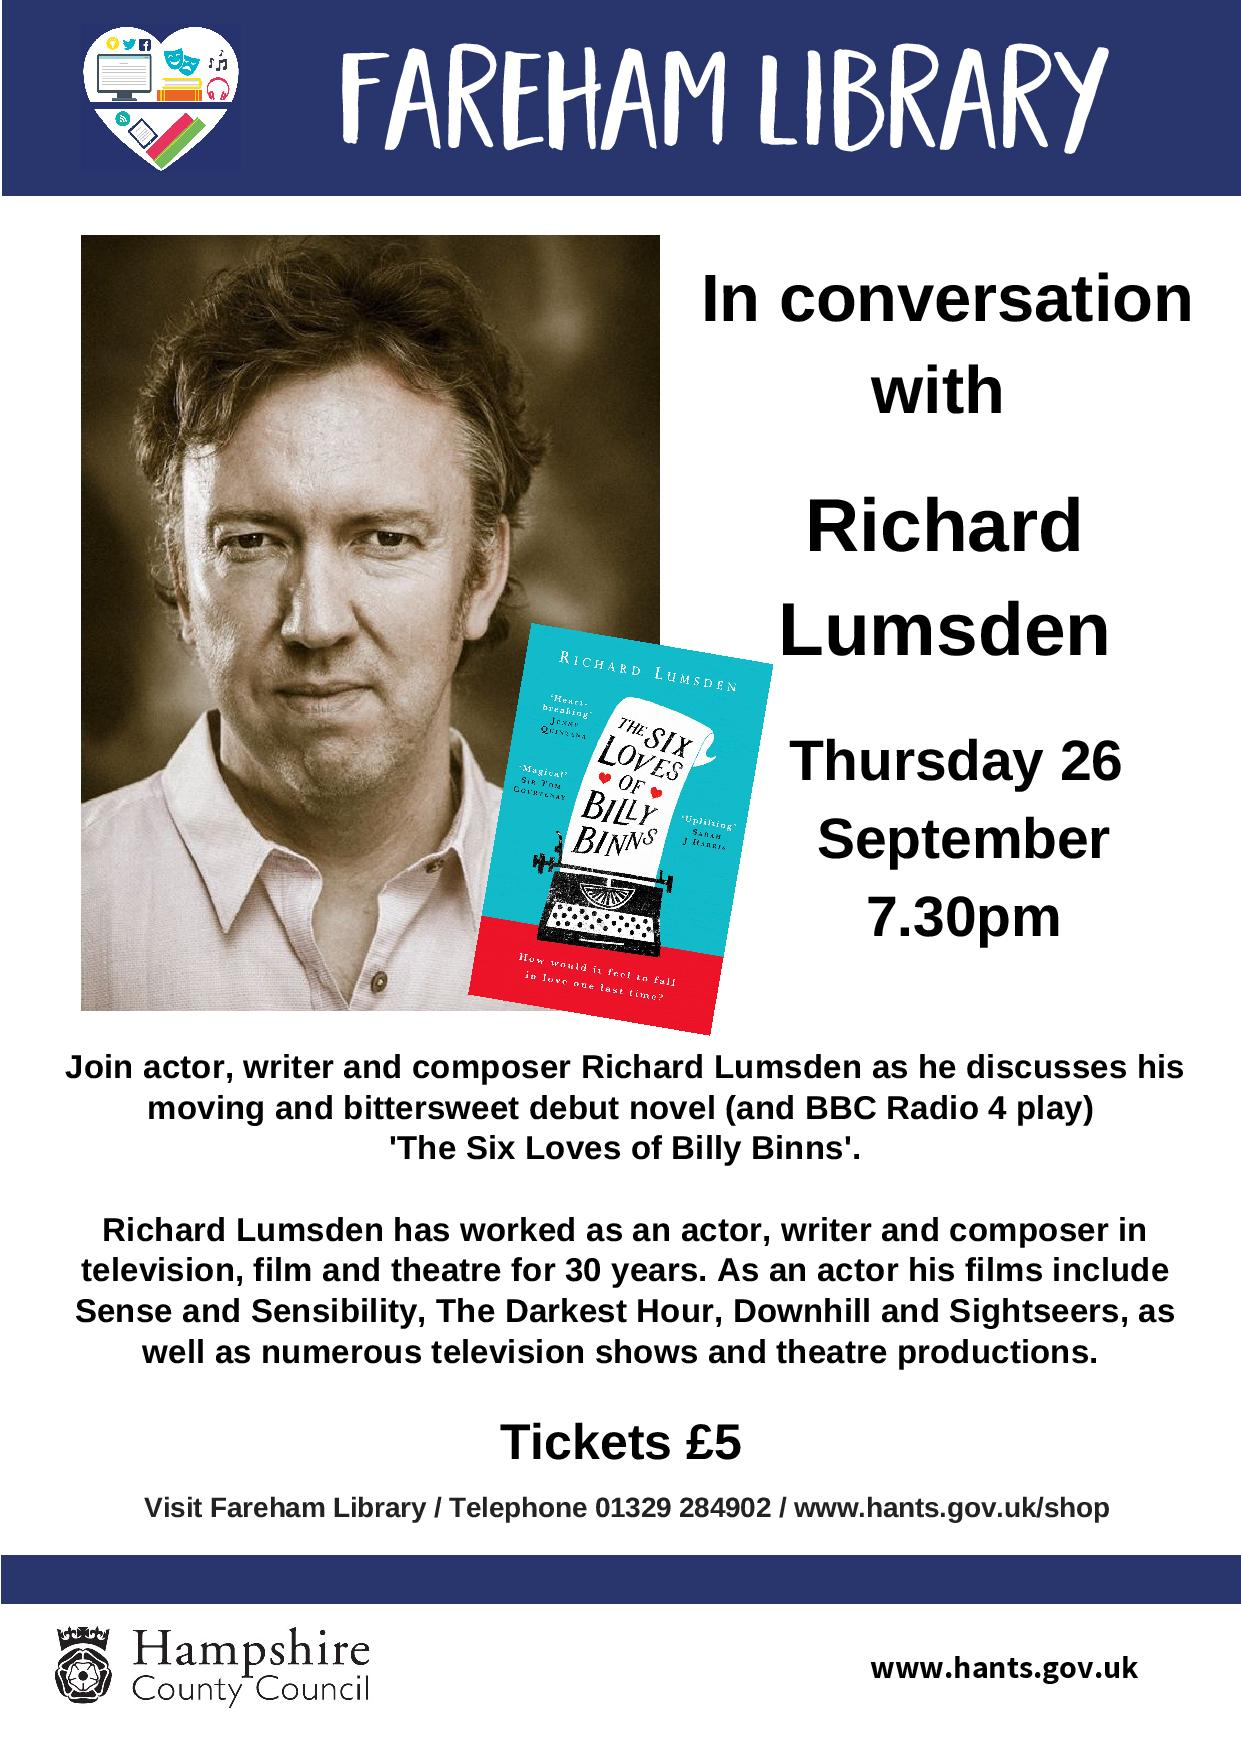 In conversation with Richard Lumsden